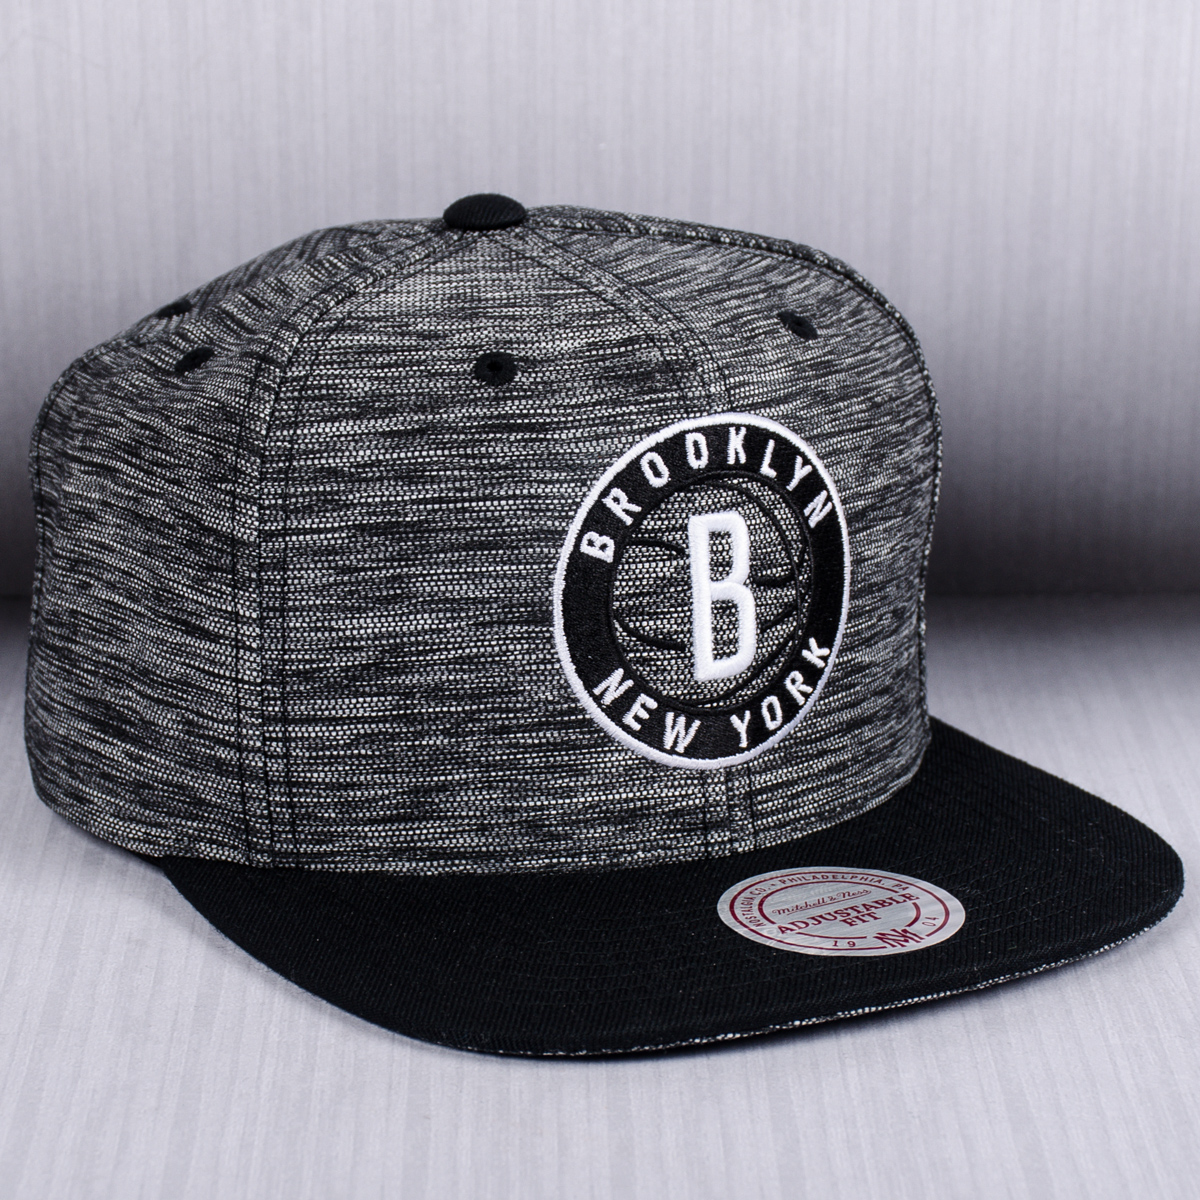 d848cca6c55 ... inexpensive mitchell ness nba brooklyn nets prime knit snapback cap  1482e 25bcd ...